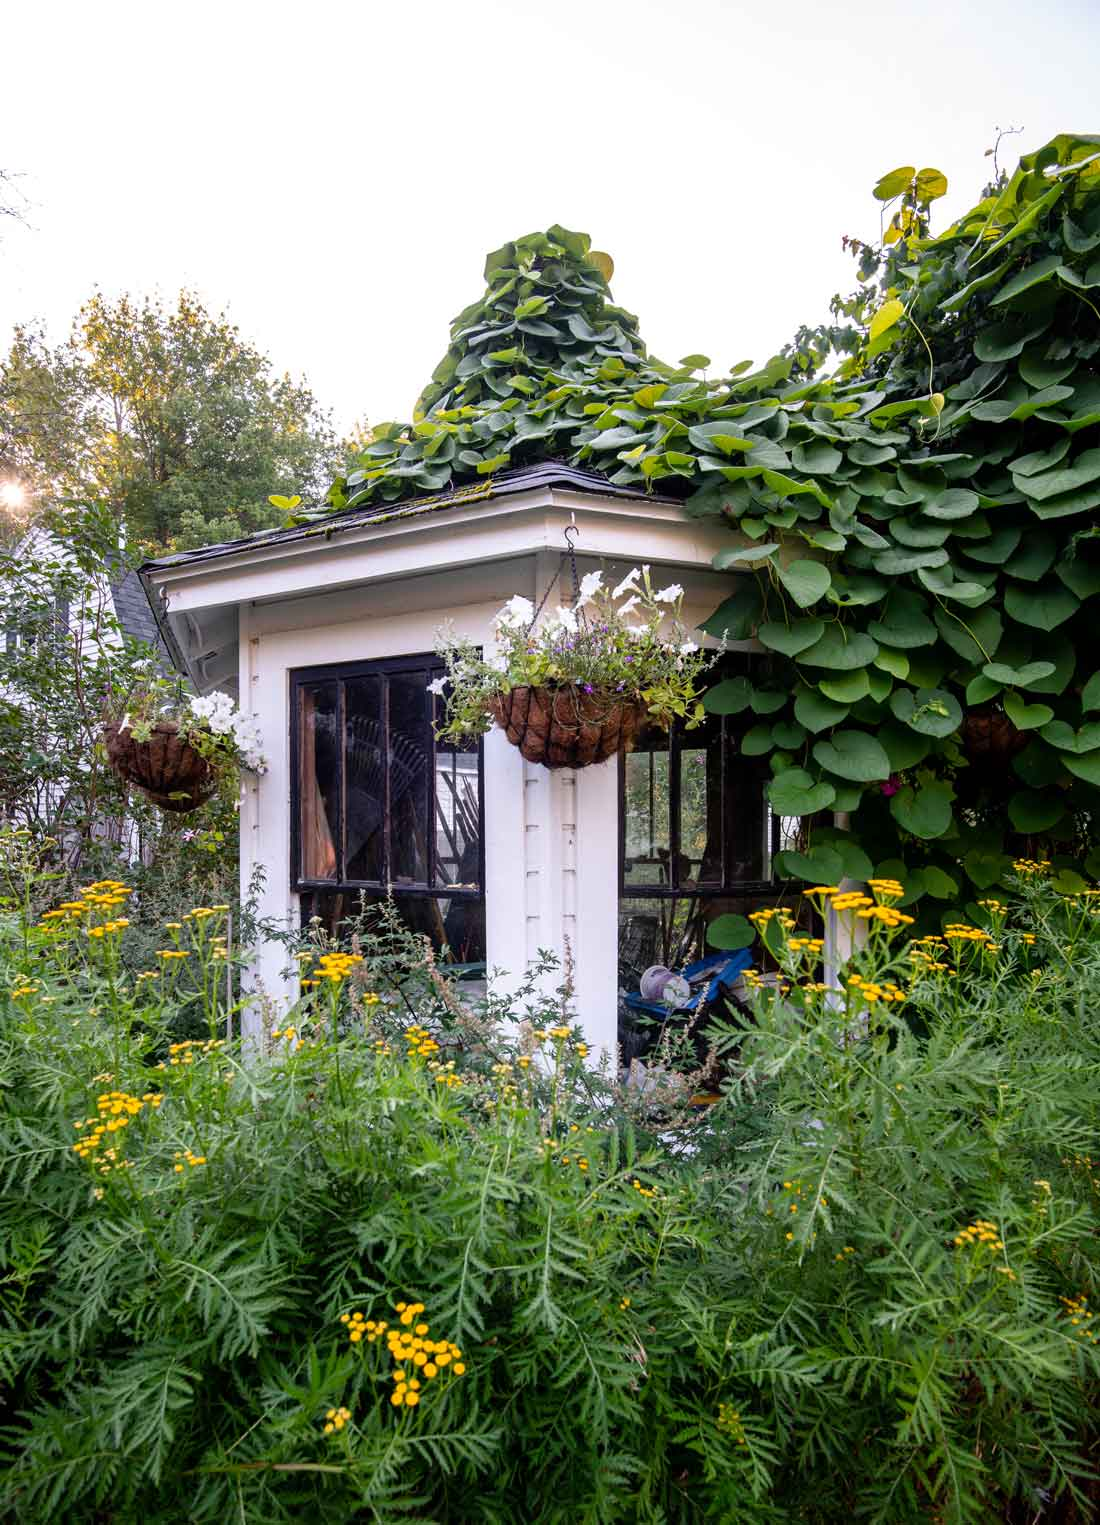 tansies and rooftop grapevines envelop an octagonal tool shed